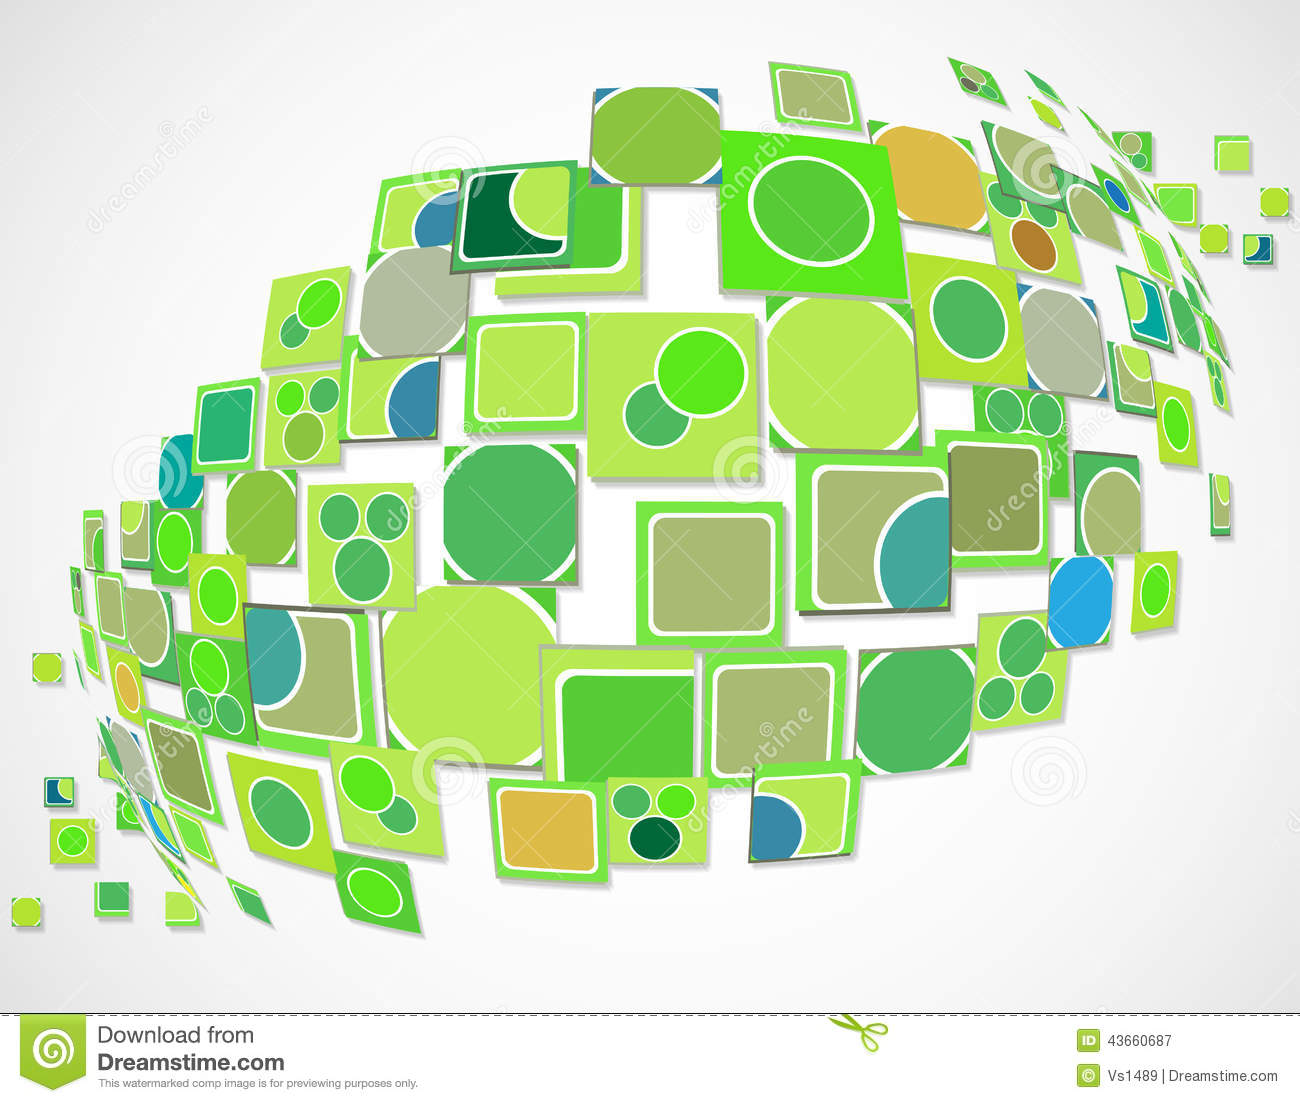 green computing concepts Keywords: green computing, green technology, advance computing, energy management, power management, energy management, recycling, green industries i introduction in simplified manner we can say that green computing is actually nothing but the concept that deals with green aspects like green user,.